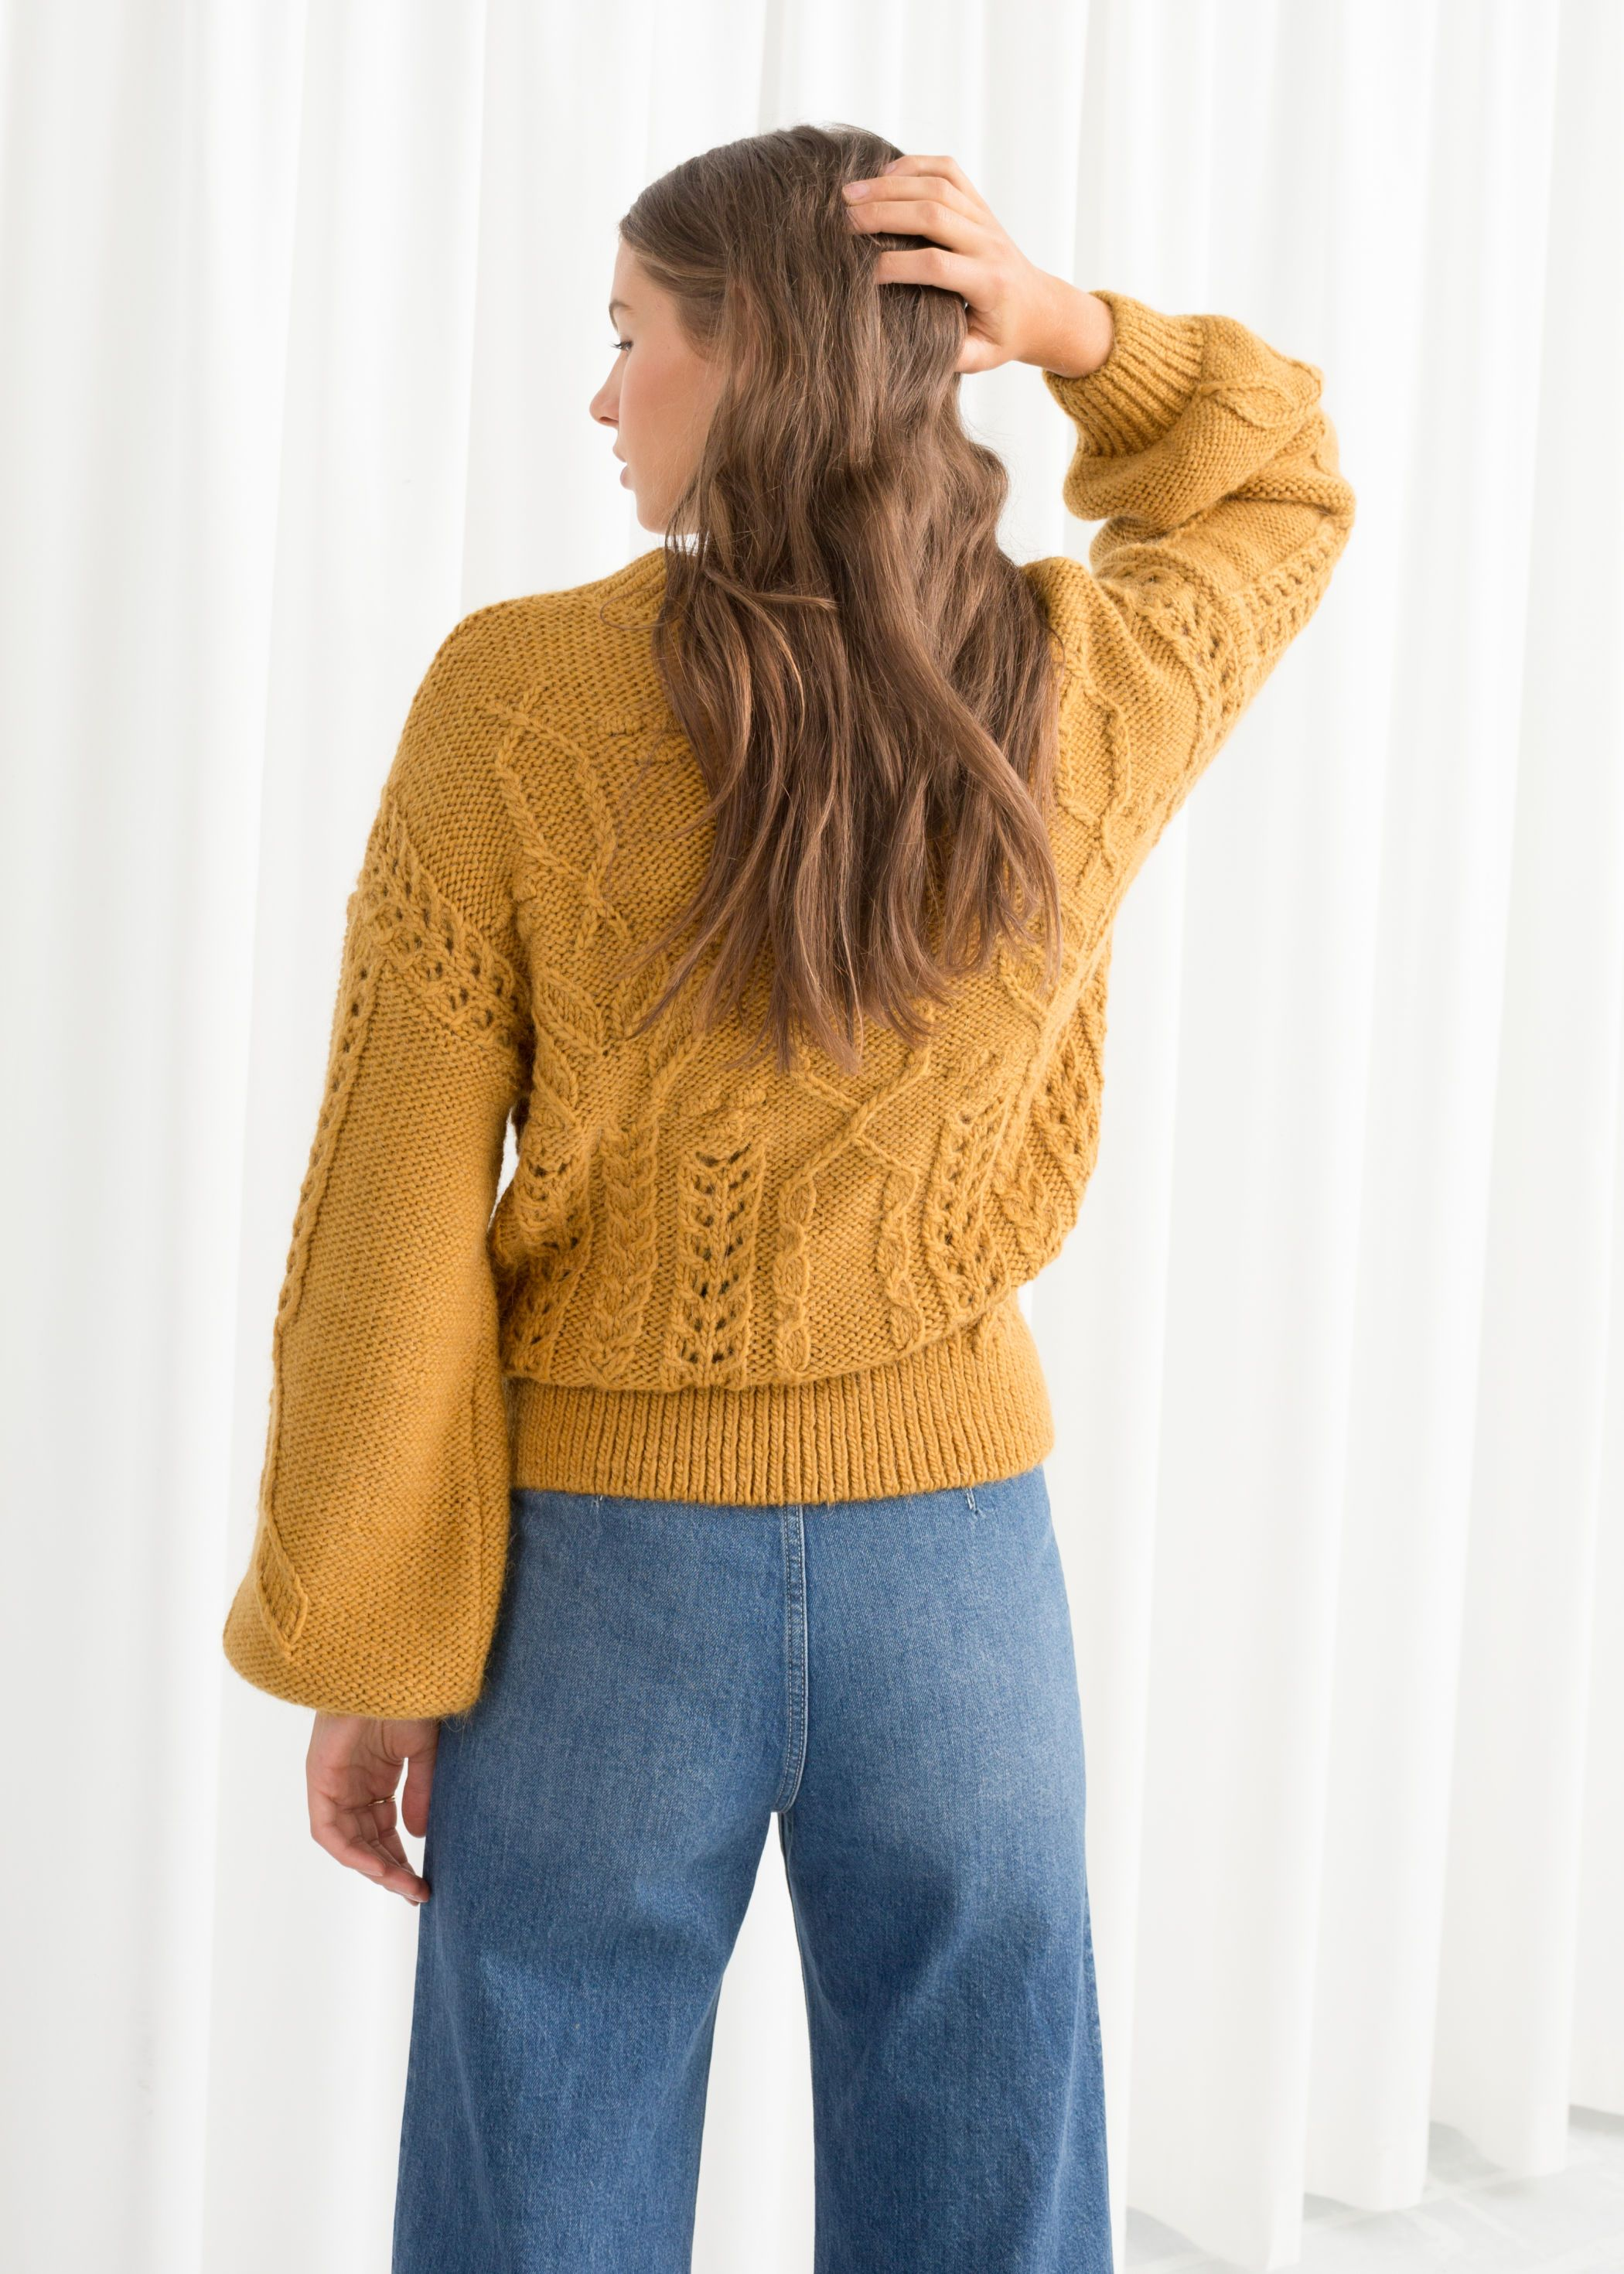 63e9b7d9241 Floral Cable Knit Sweater | Knit | Sweaters, Cable knit sweaters ...